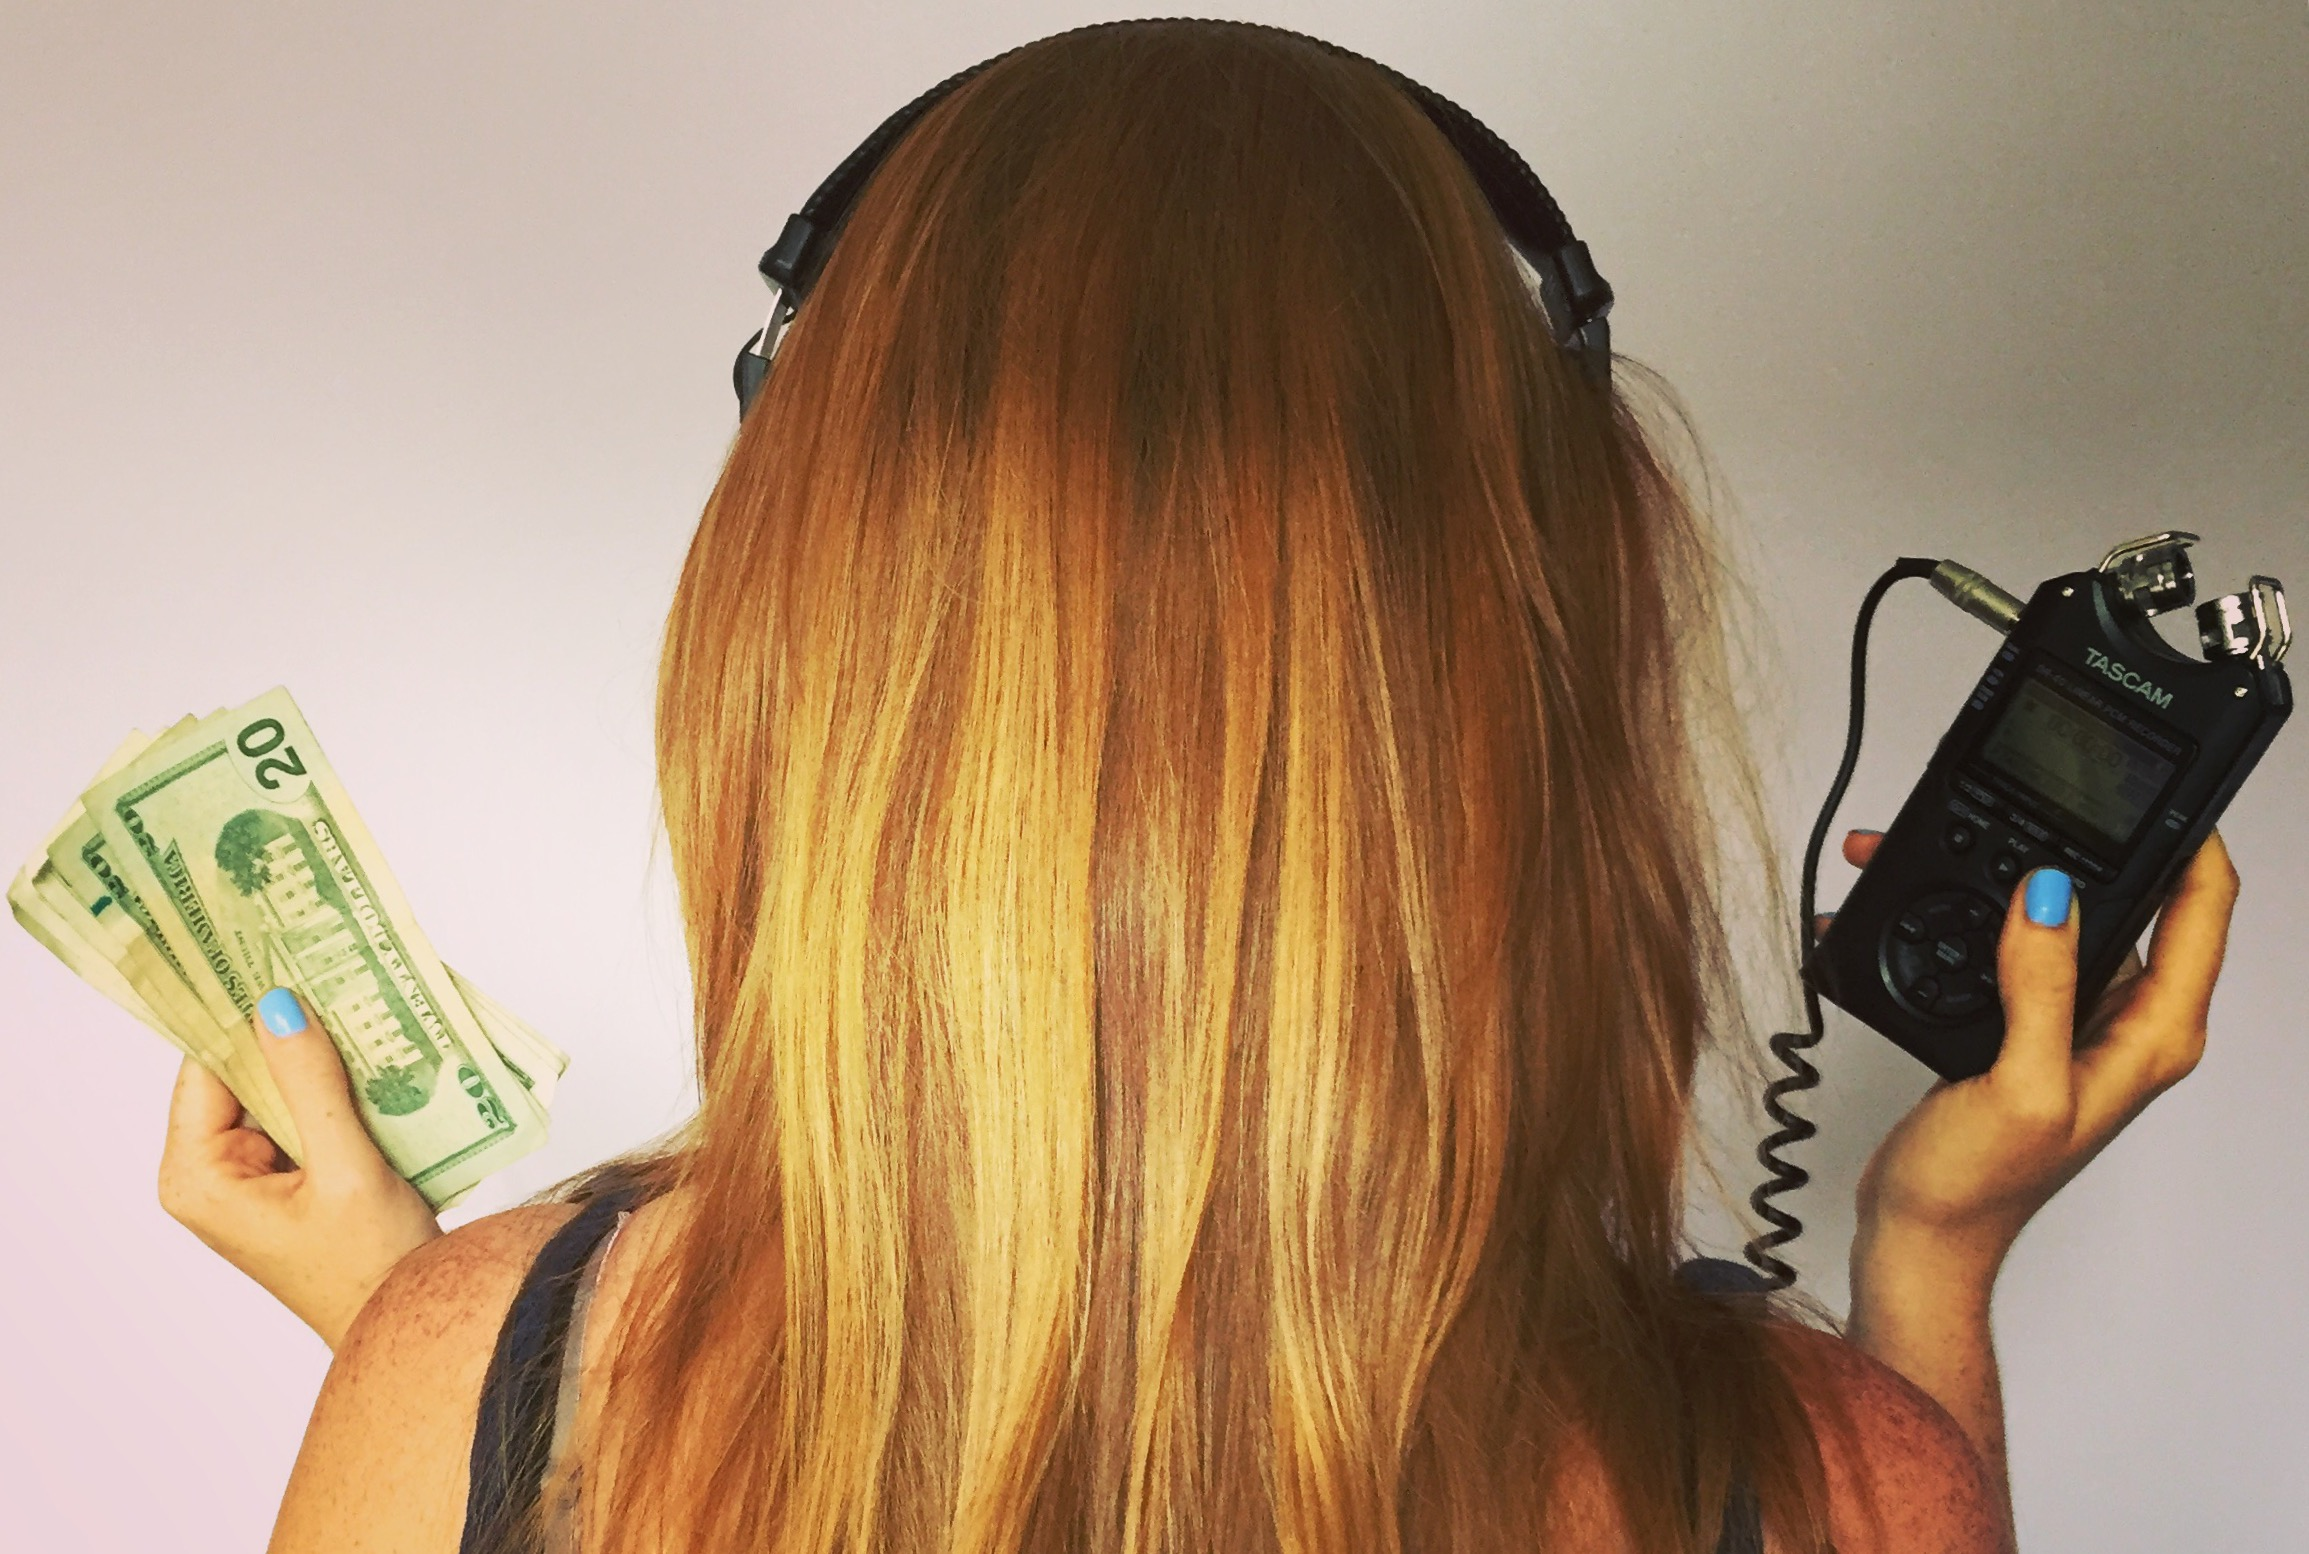 A woman with red hair and headphones is seen from the back holding a fistful of $20 bills in her left hand, and an audio recorder in her right